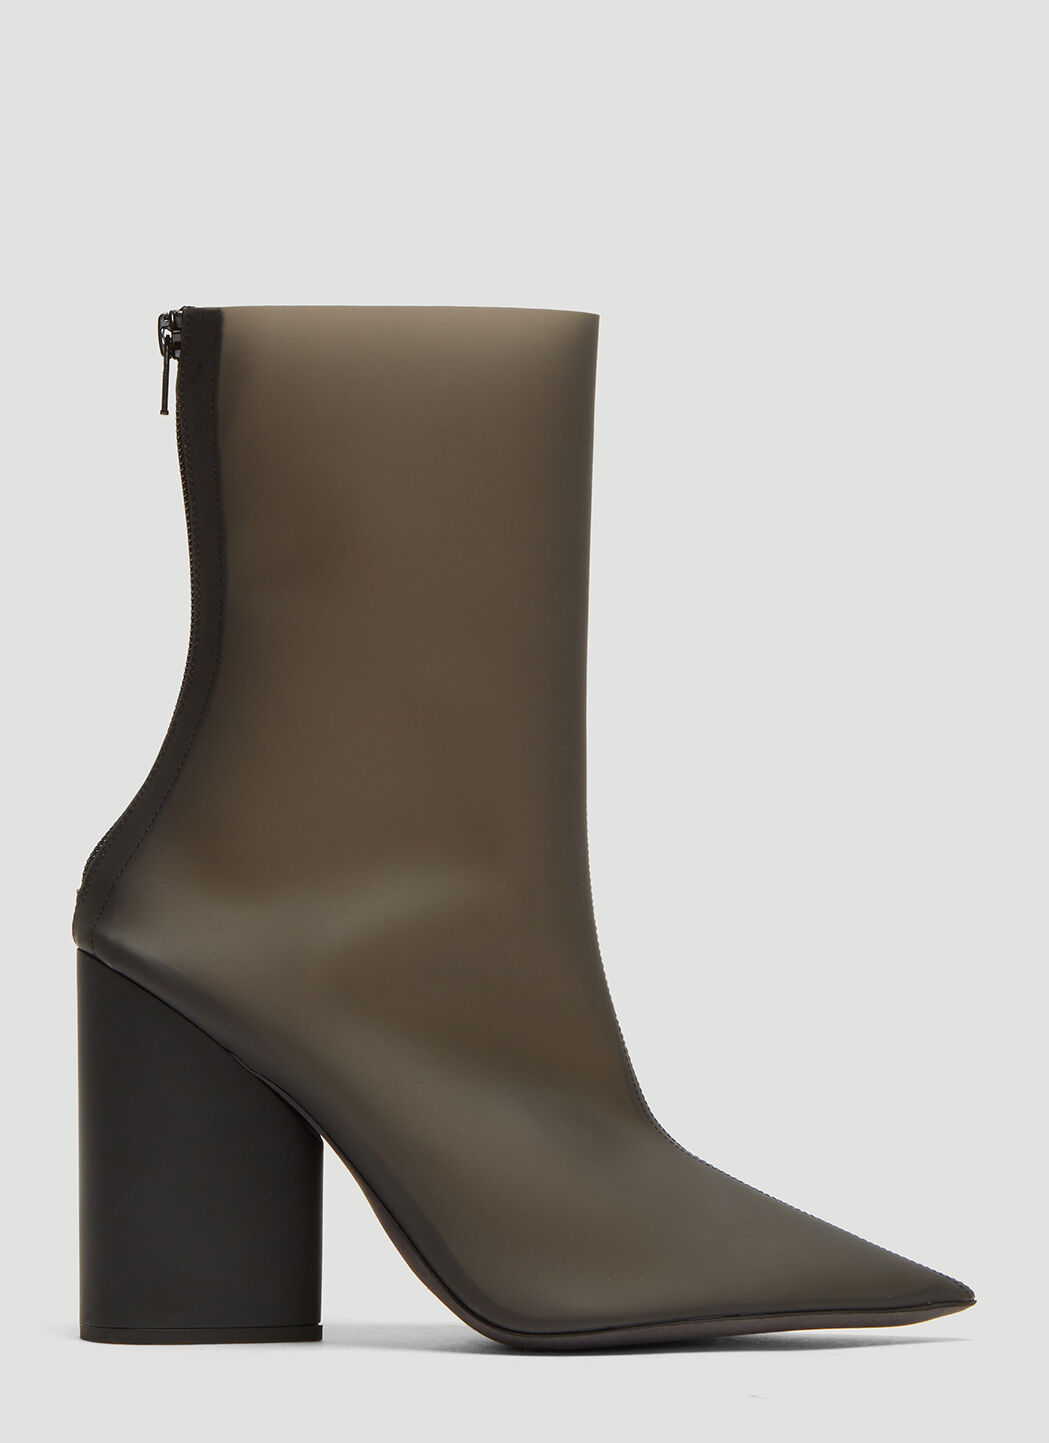 Yeezy Semi Opaque PVC Ankle Boots in Black